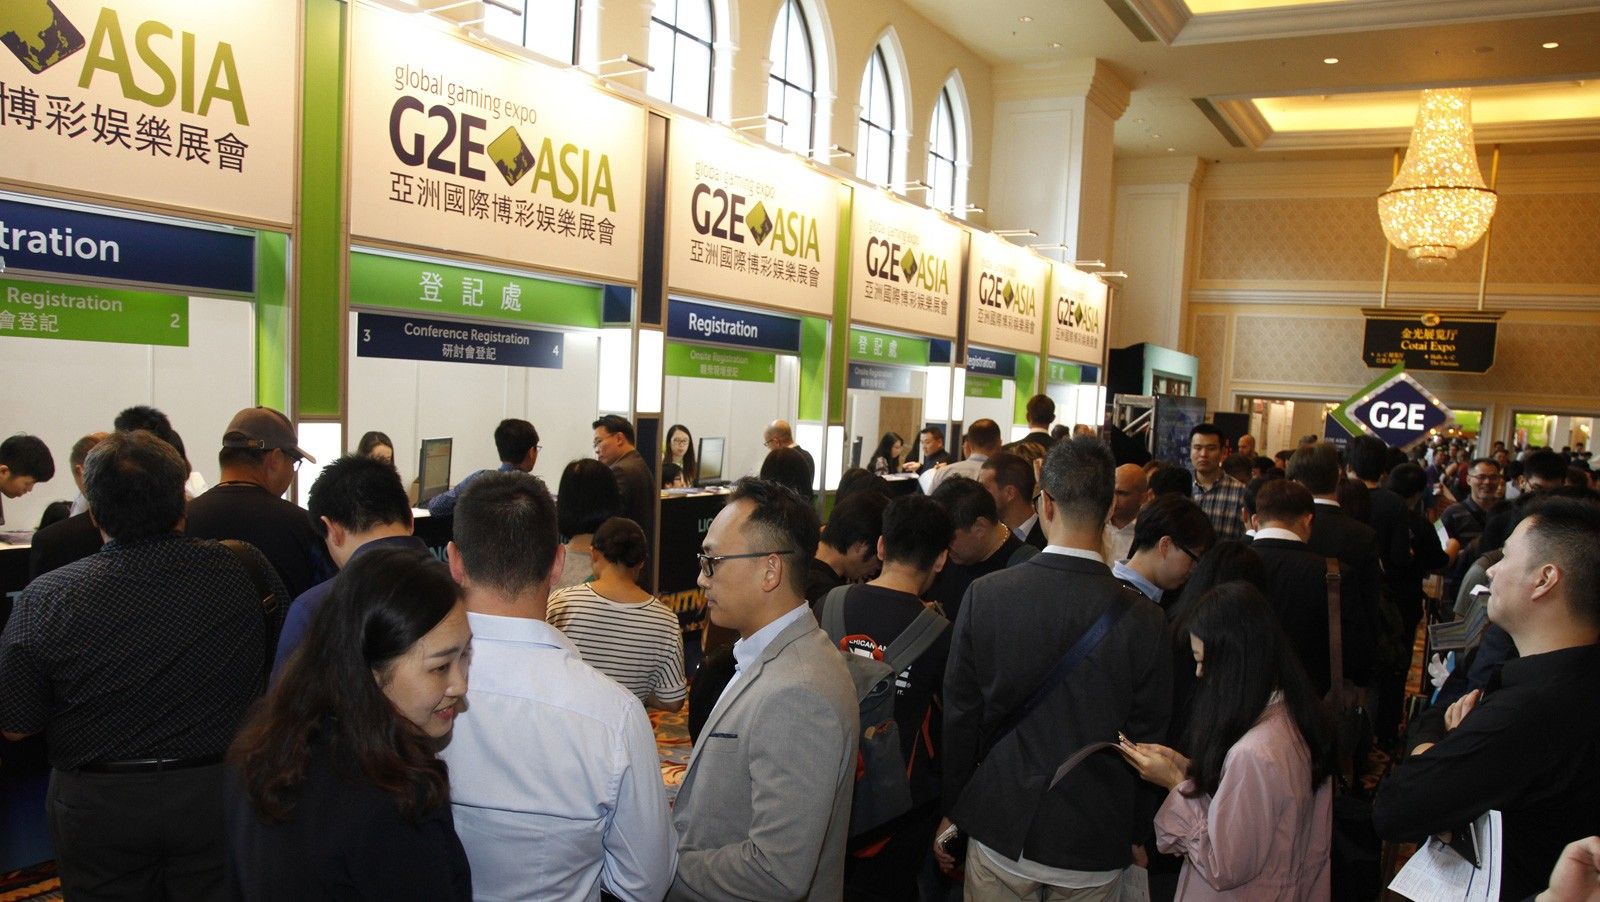 Global Gaming Expo Asia 2018 gets set for Industry Heavyweights